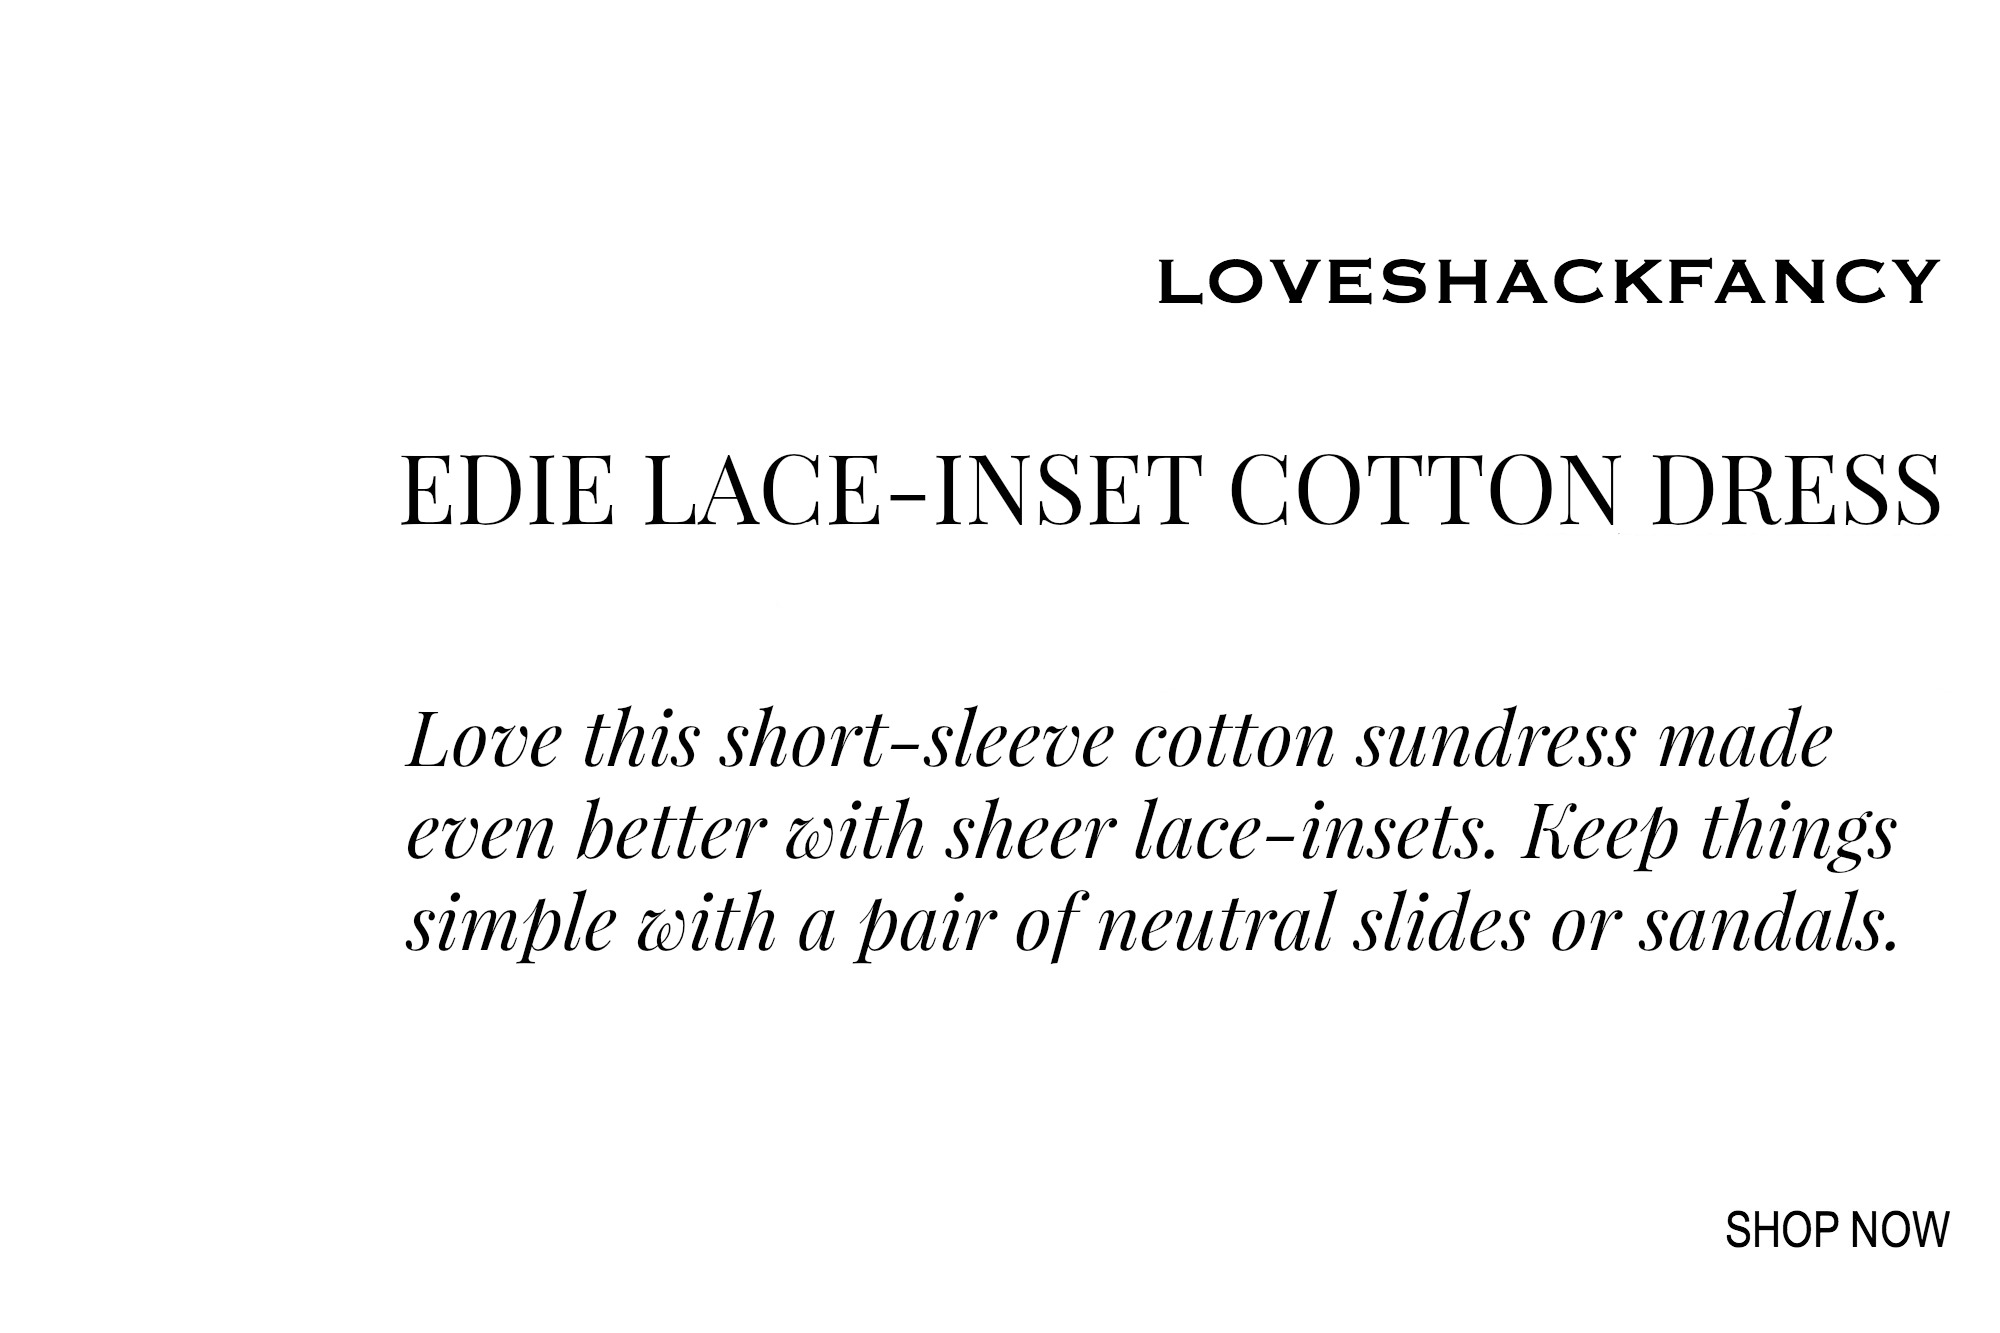 Loveshackfancy Lace-Inset Cotton Dress